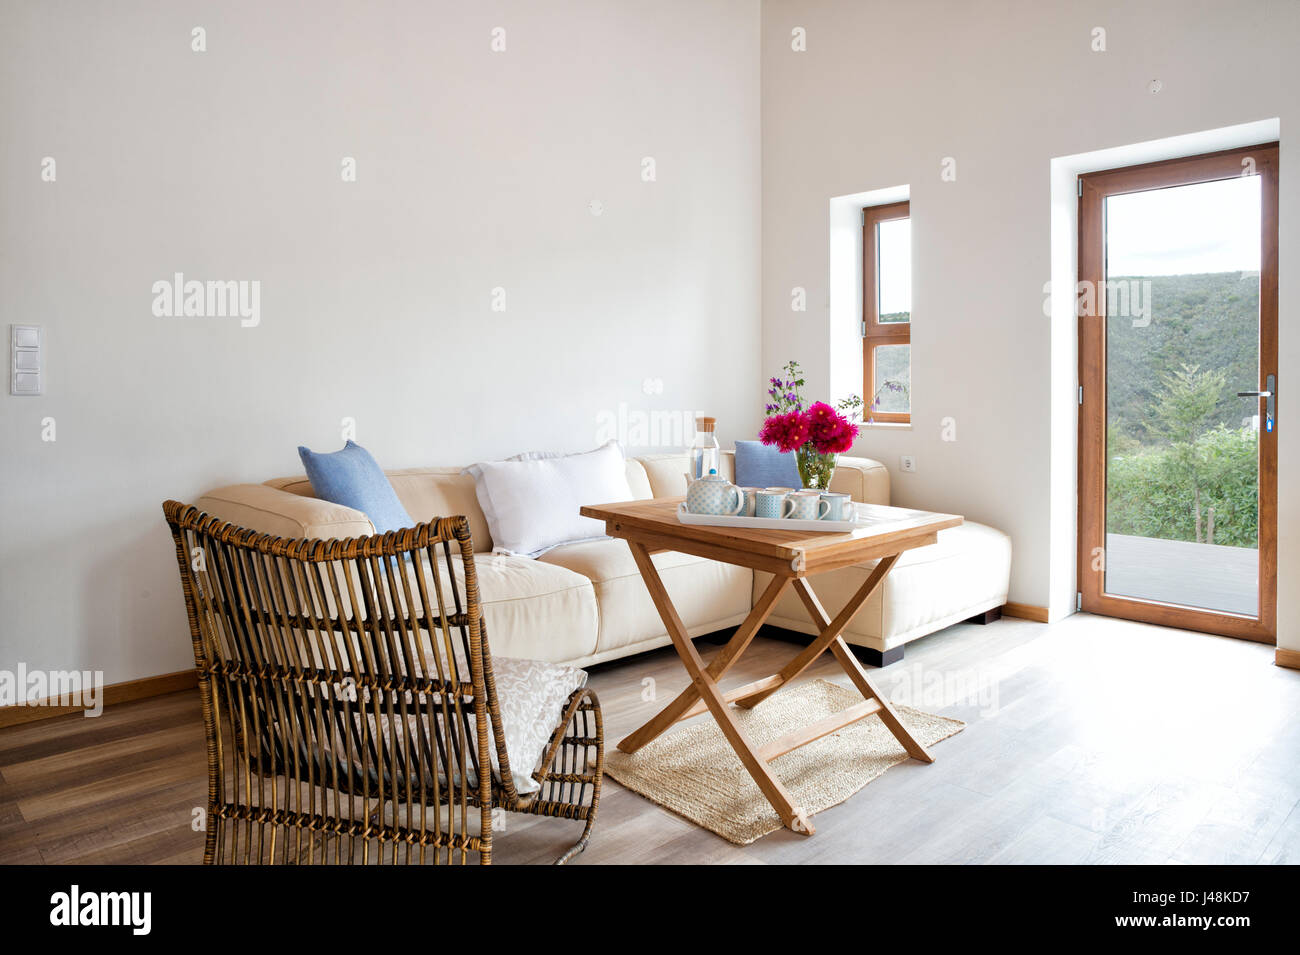 contemporary sitting room with wooden table with china tea set - Stock Image